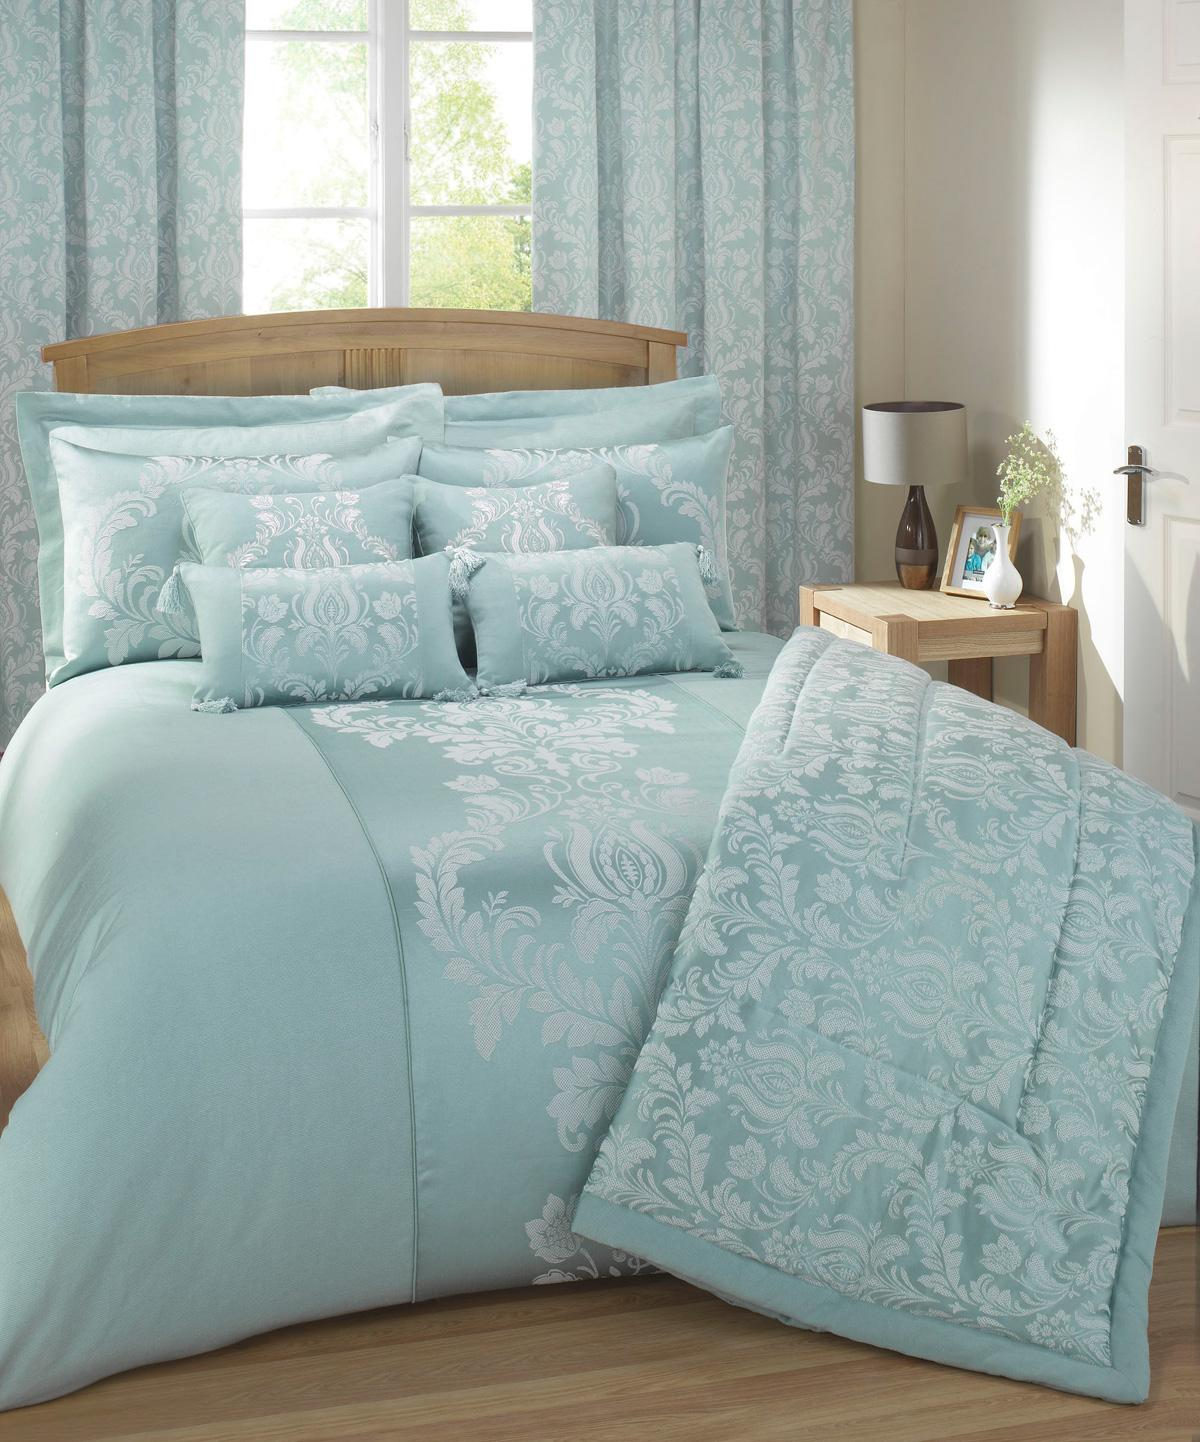 Soft Green Delphine Luxury Bedding by Julian Charles